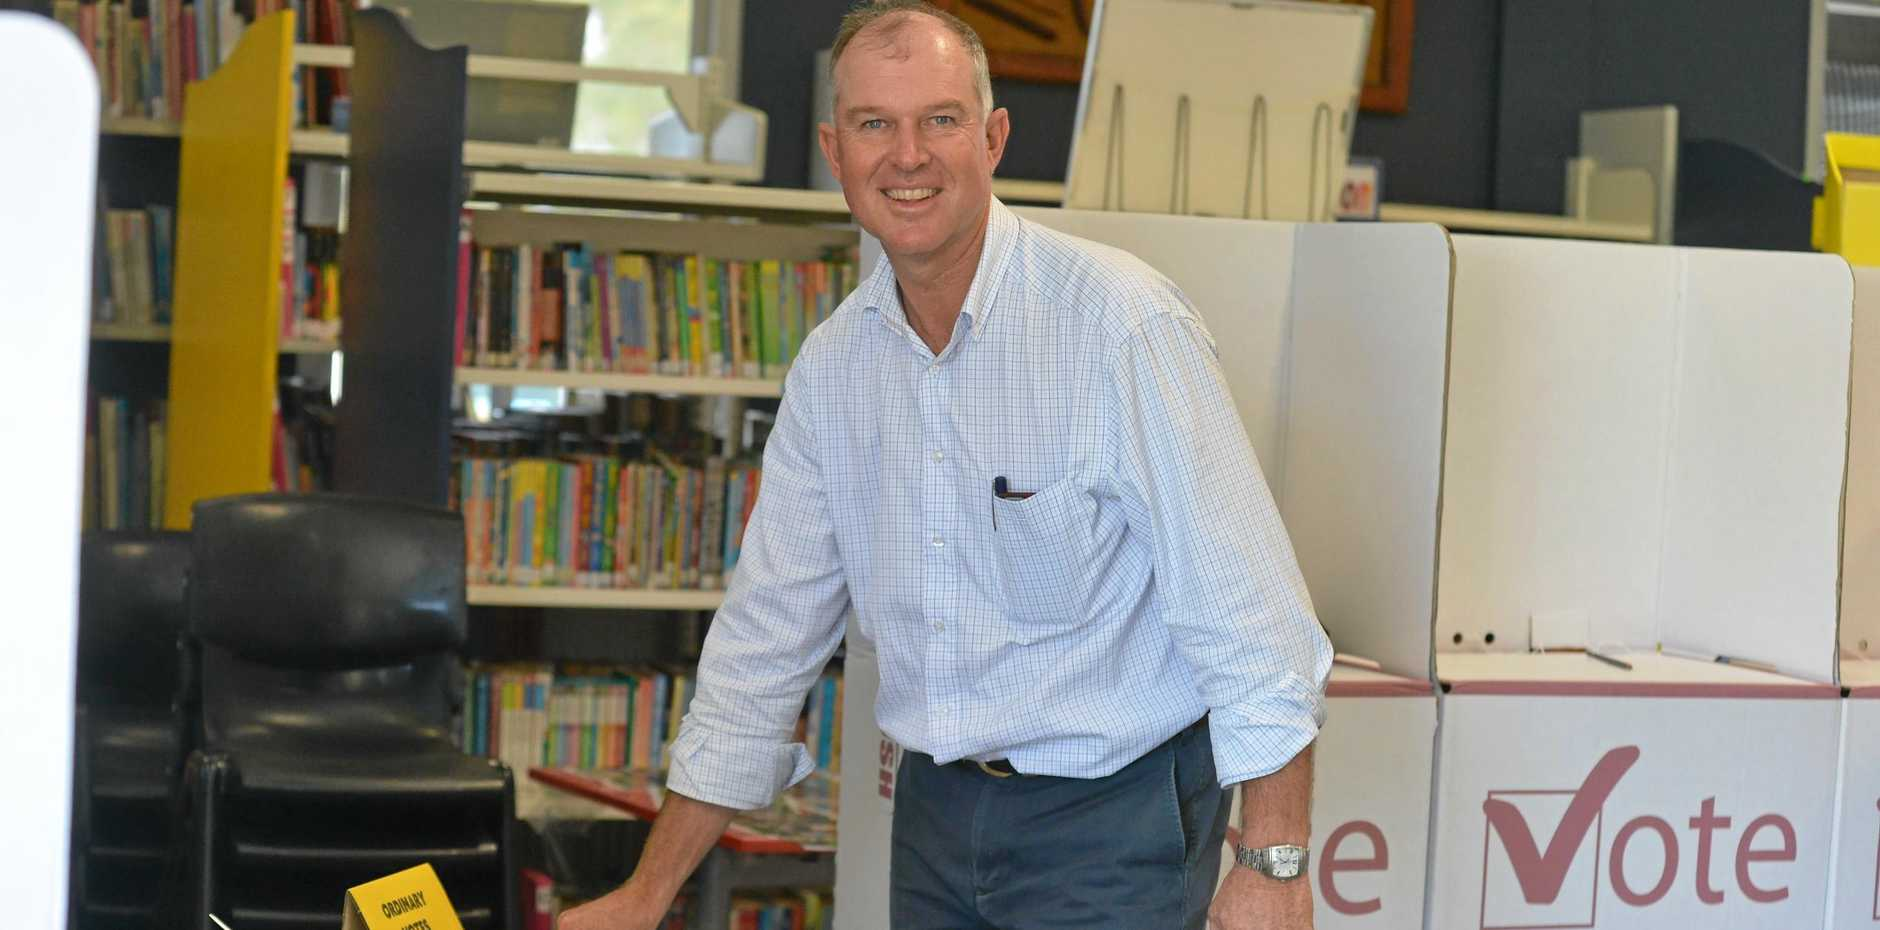 VOTED: Gympie's LNP candidate Tony Perrett casts his vote this morning at Rainbow Beach.